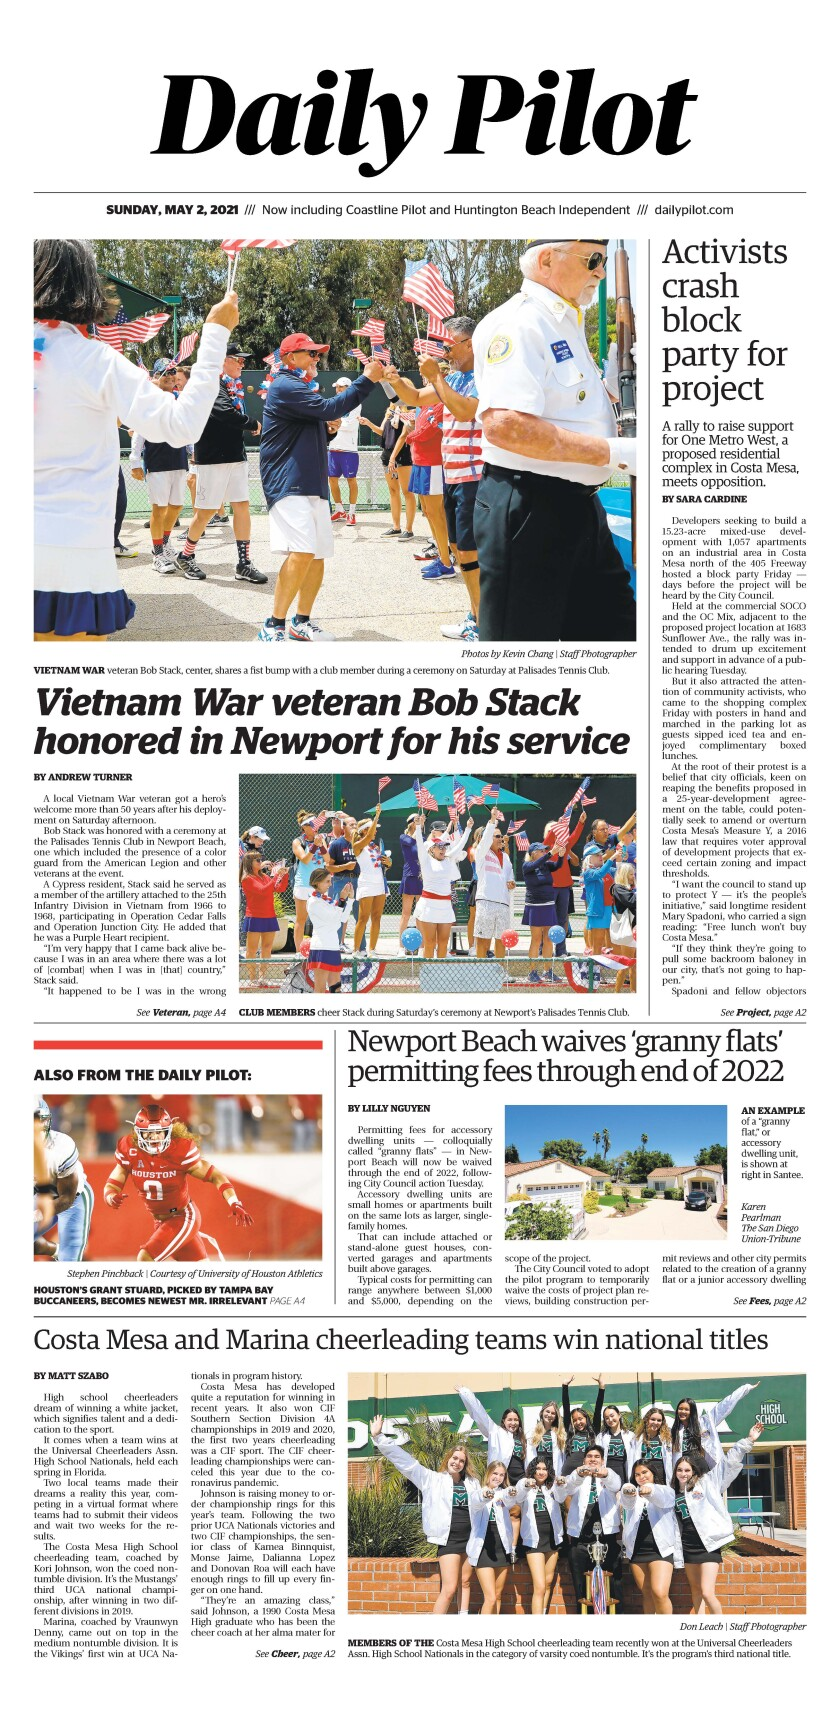 Front page of Daily Pilot e-newspaper for Sunday, May 2, 2021.